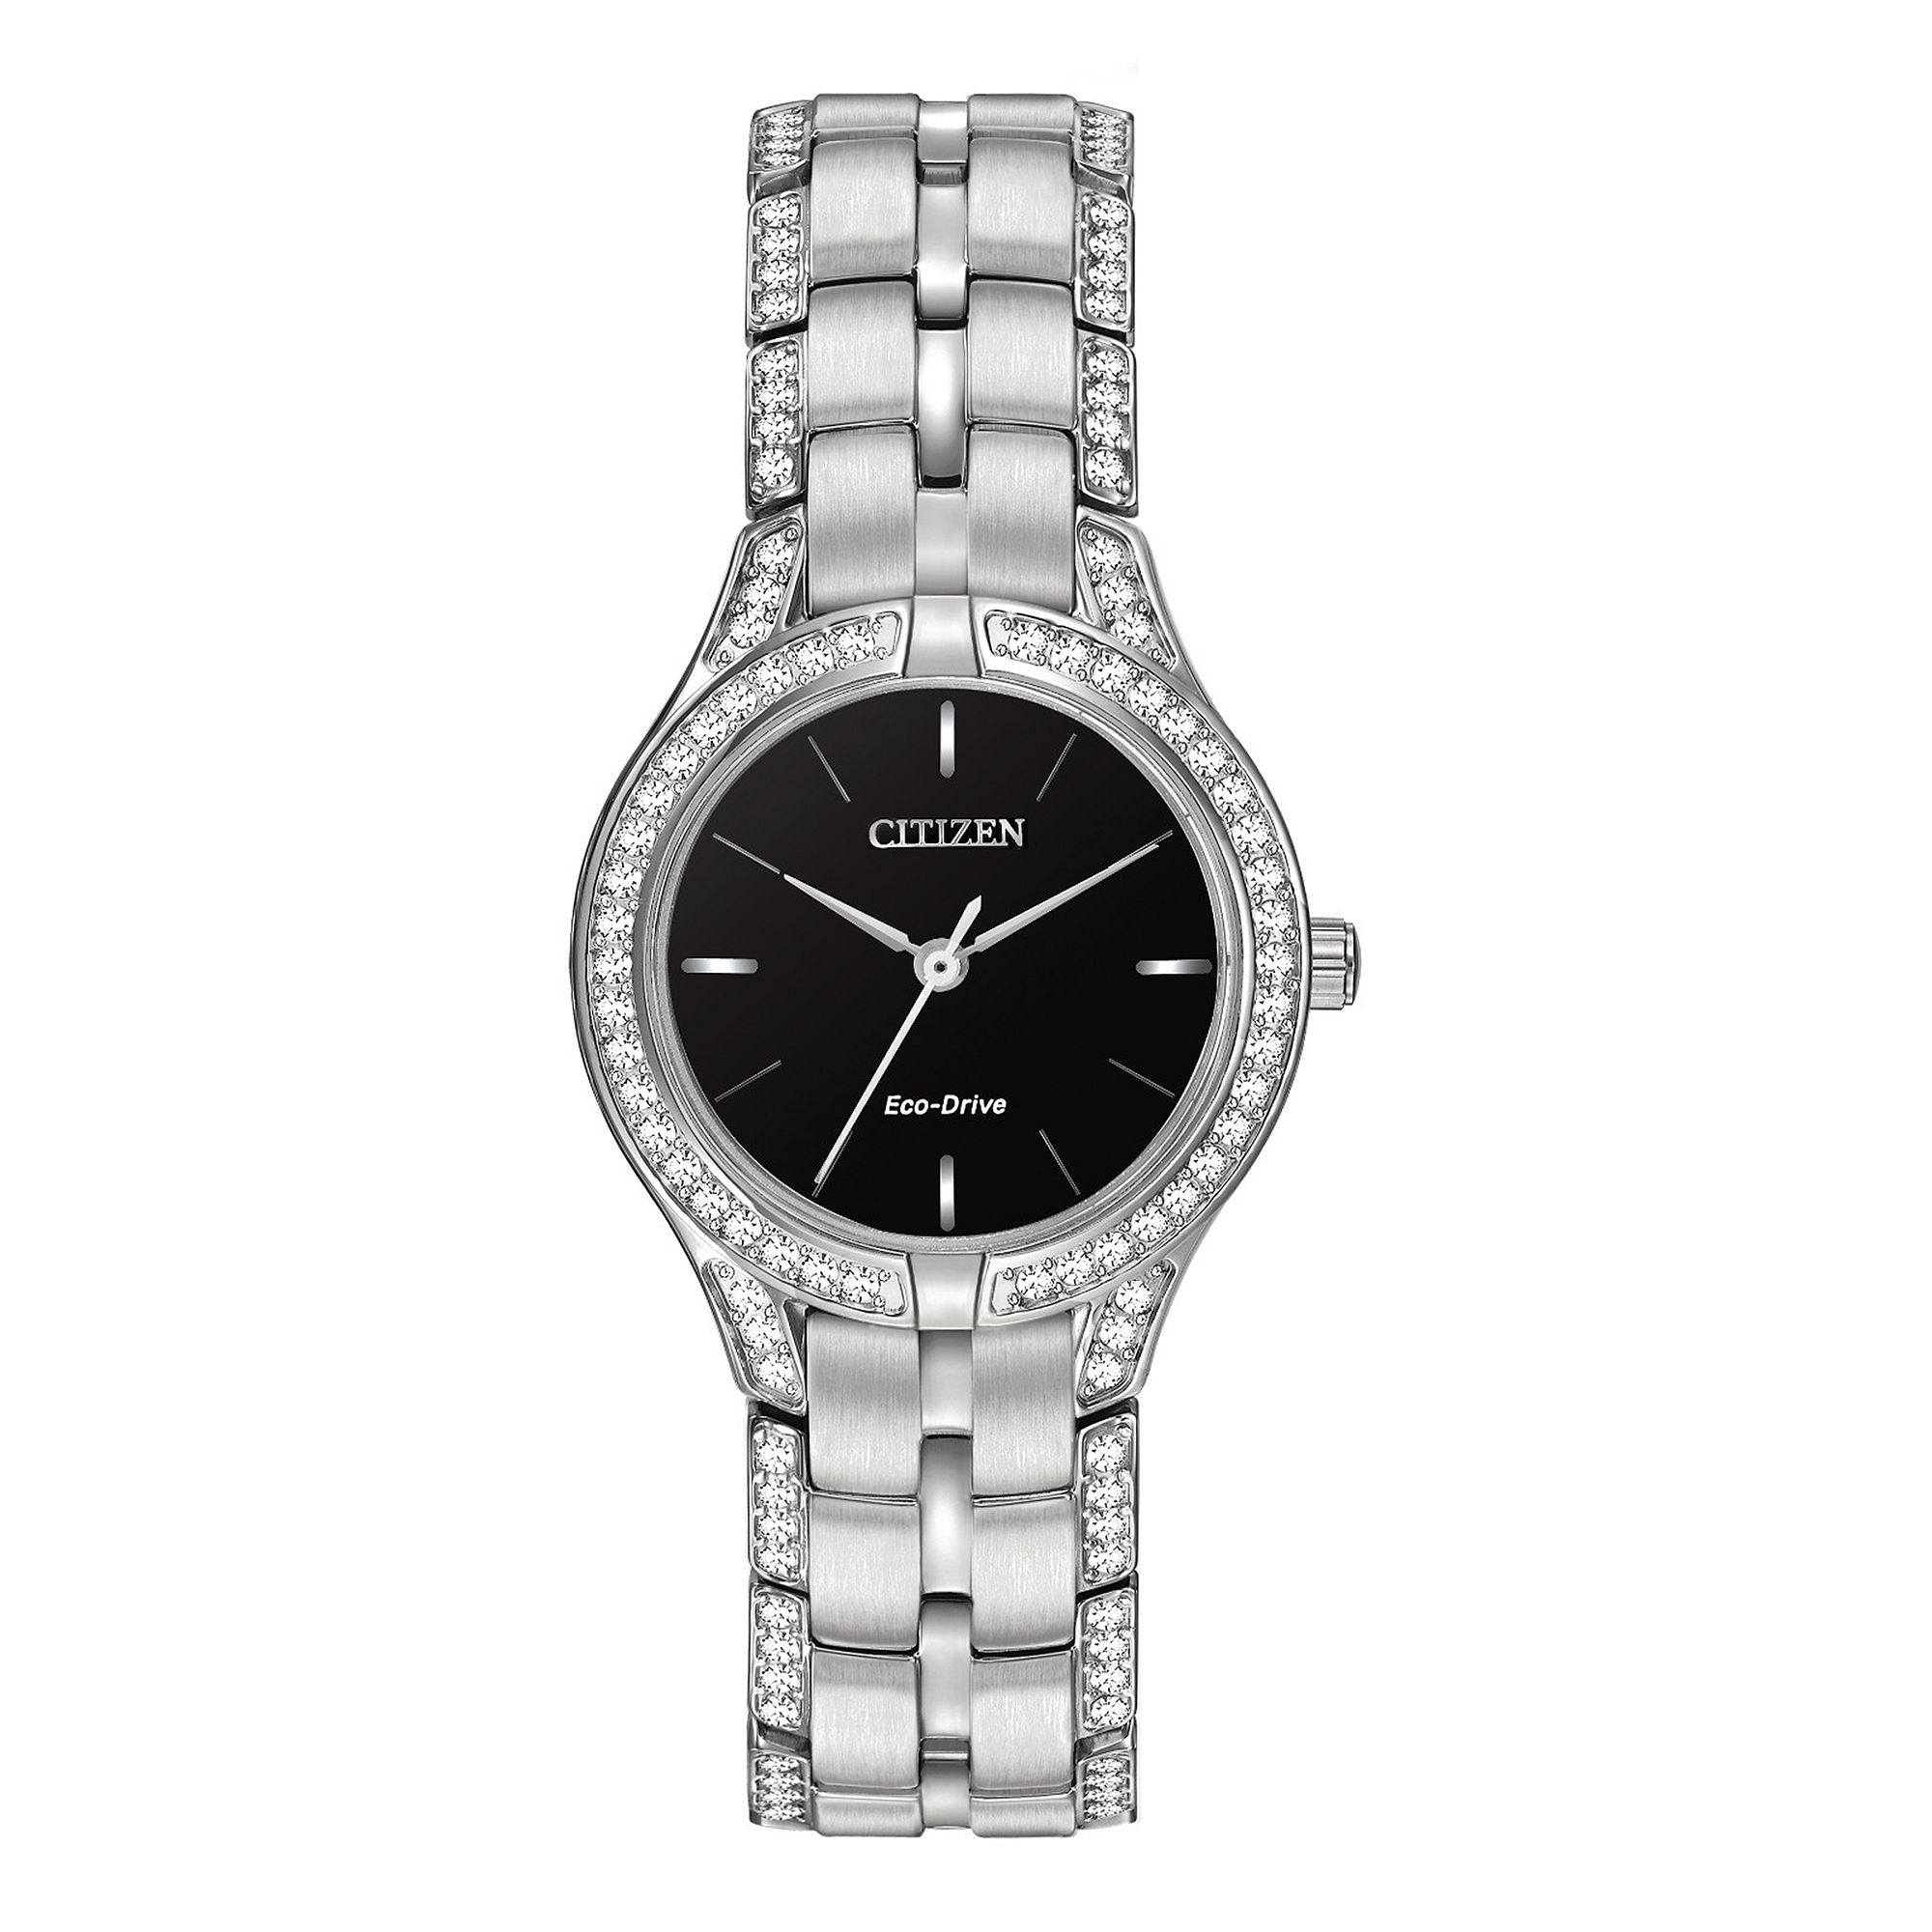 Upc 013205110689 citizen eco drive silhouette womens crystal accent bracelet watch fe2060 53e for Crystal ladies watch